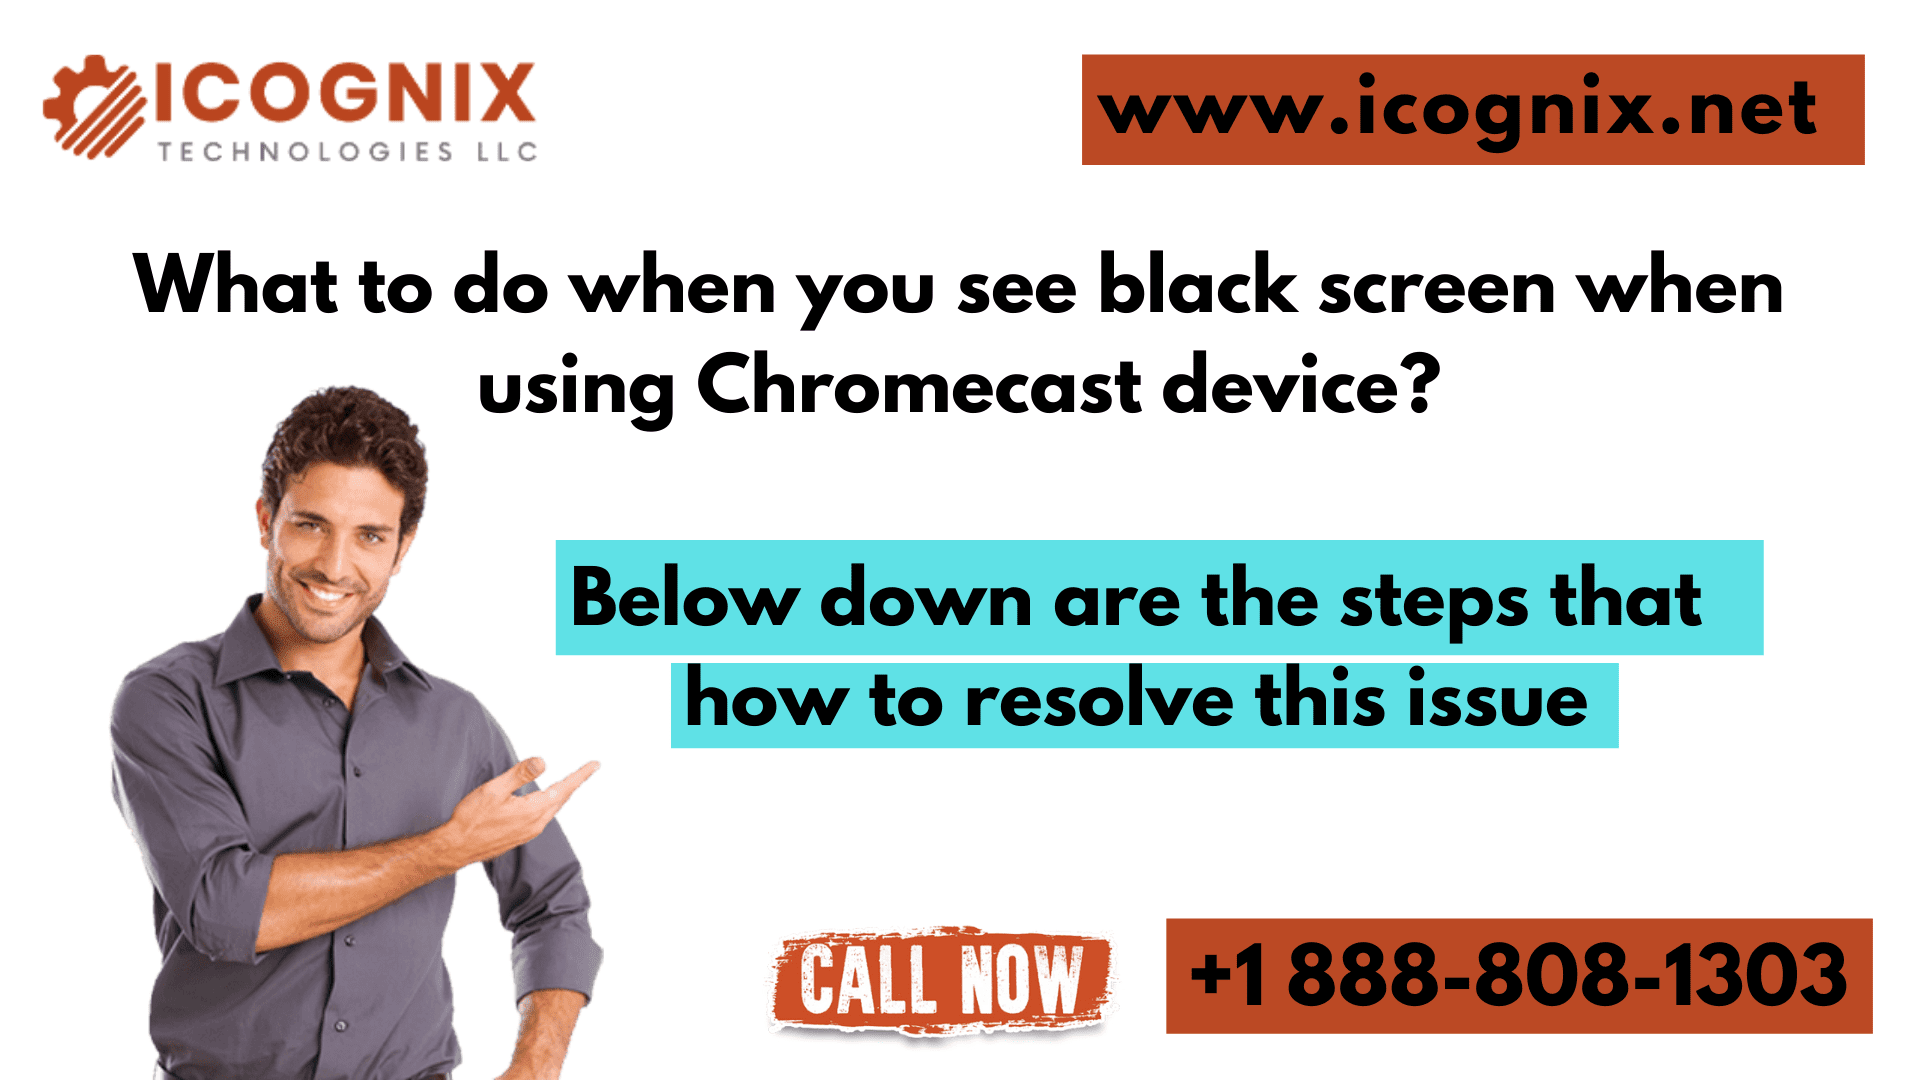 What to do when you see black screen when using Chromecast device?